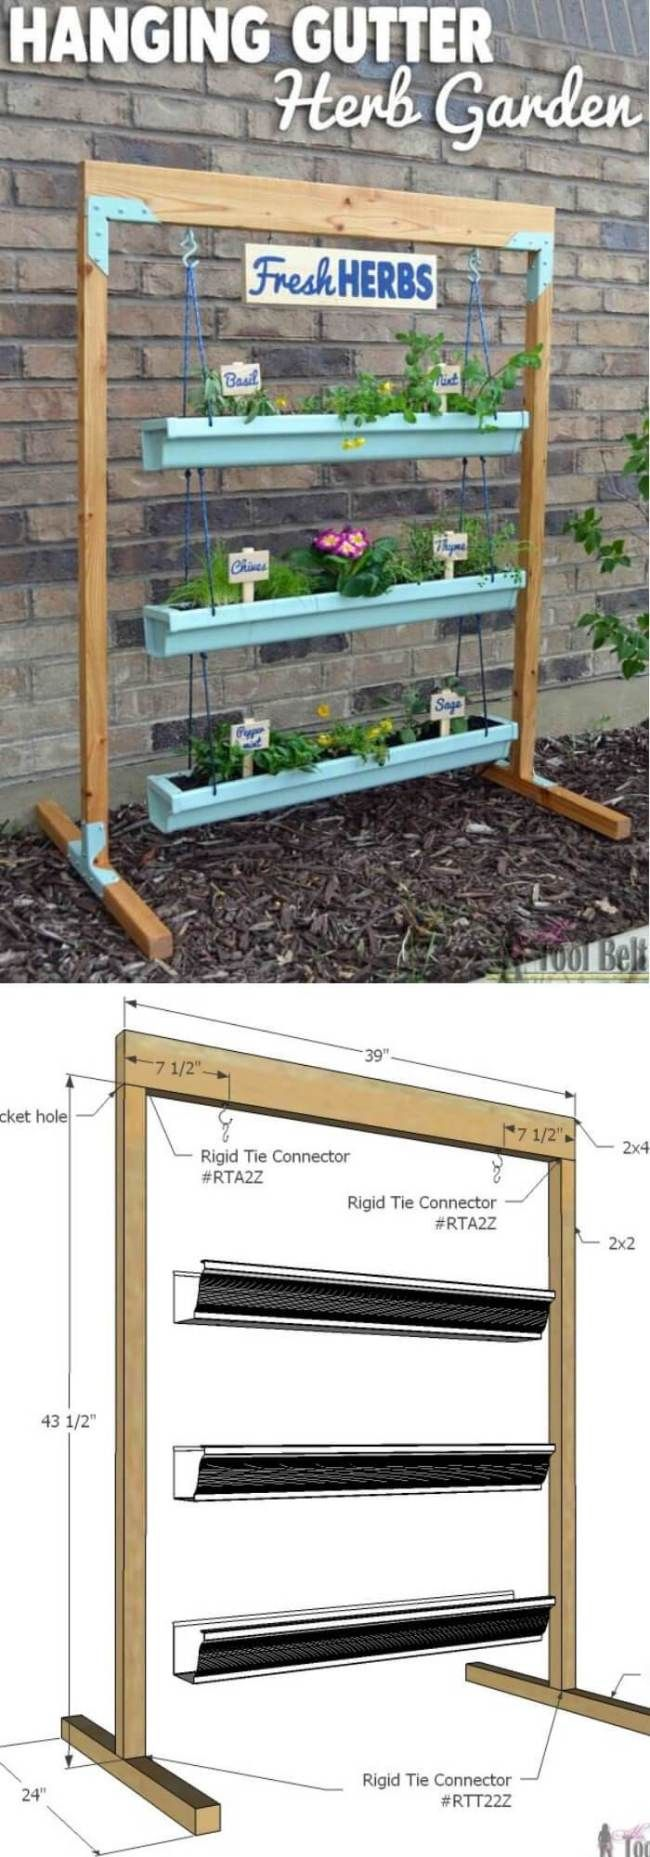 26+ Best DIY Vertical Rain Gutter Garden Ideas For Small Spaces #kräutergartendesign